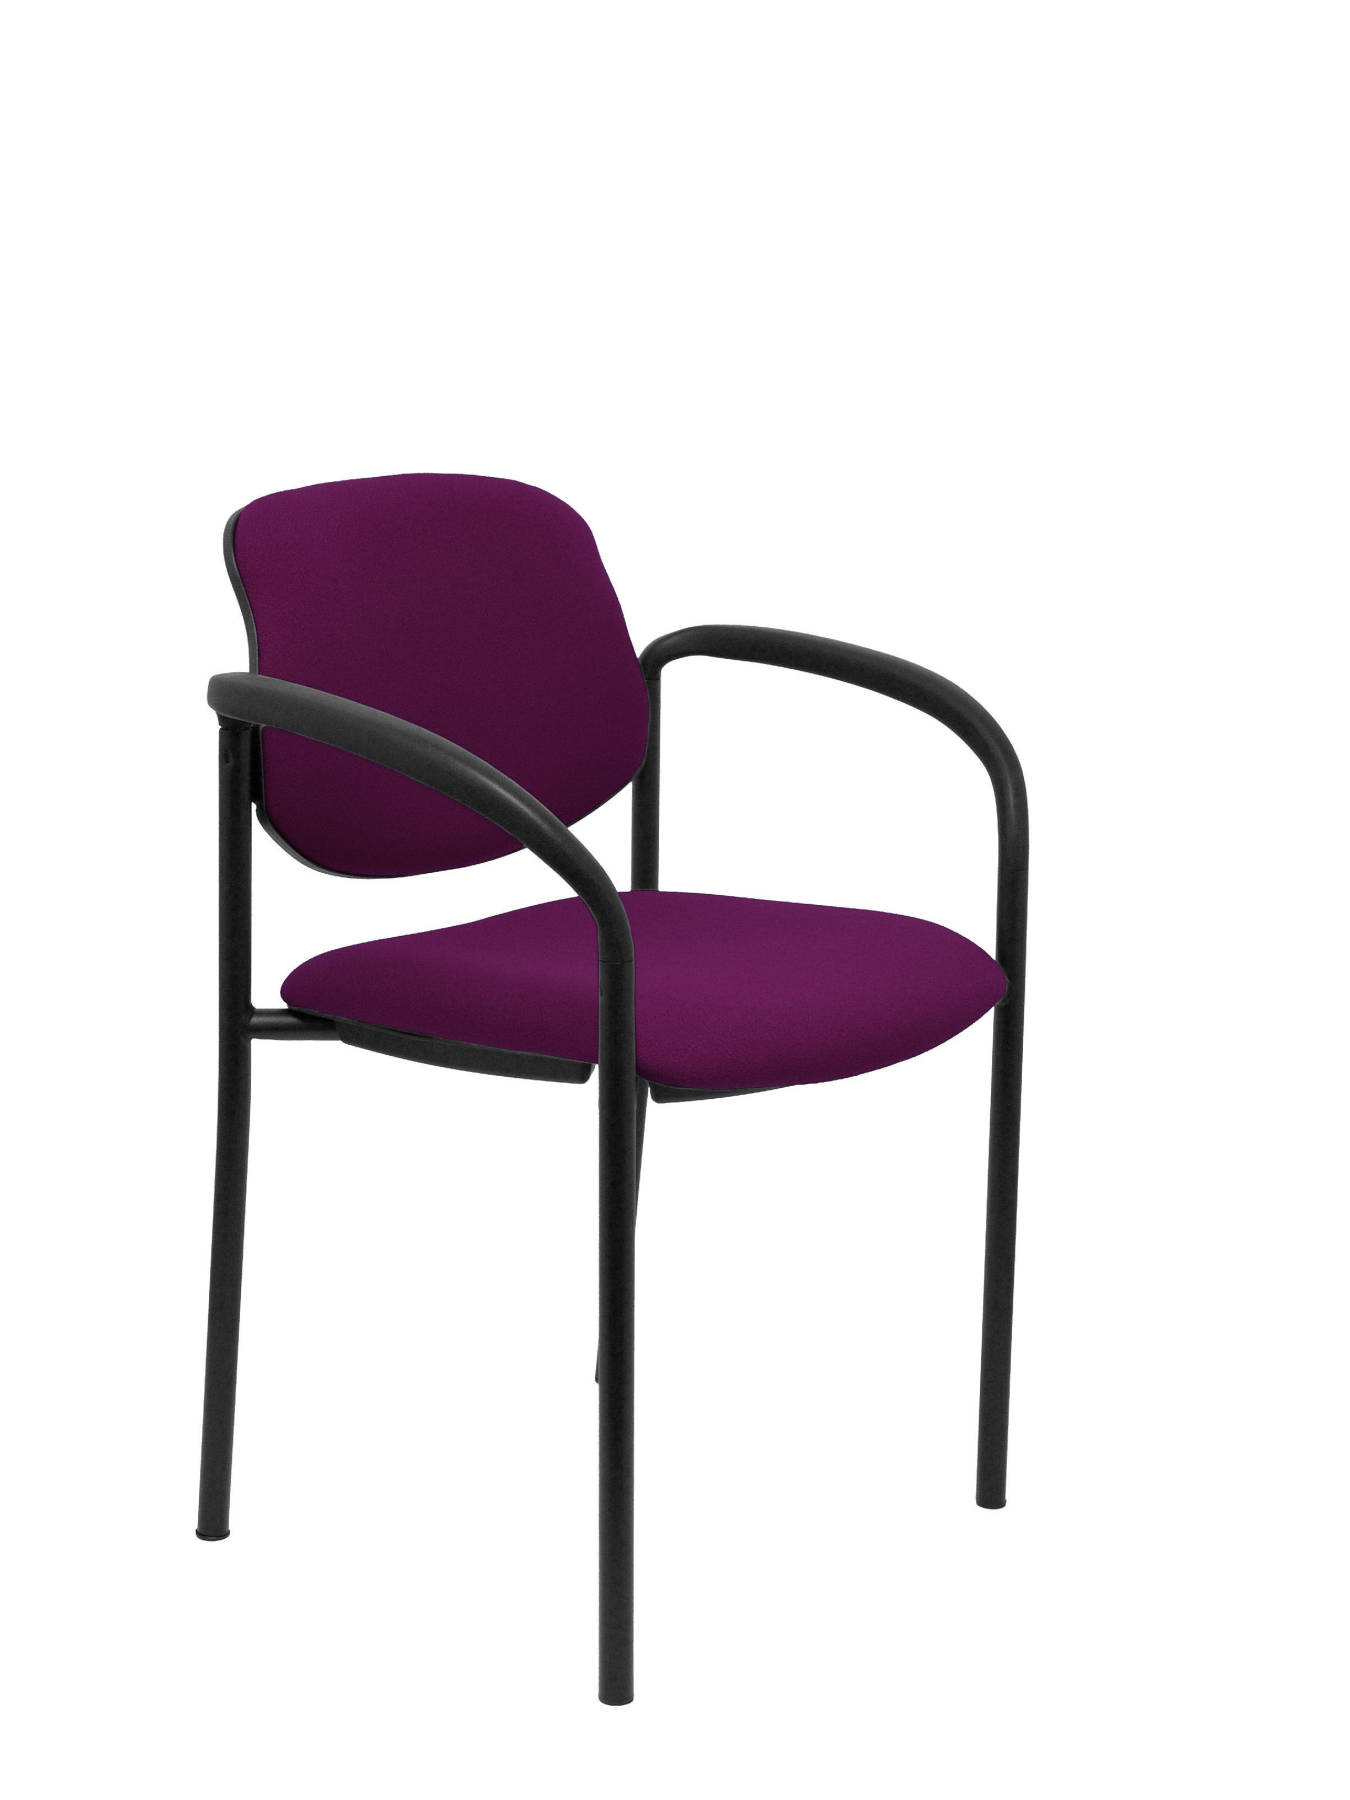 Visitor Chair 4's Topsy, With Arms And Estructrua Negro-up Seat And Backstop Upholstered In BALI Tissue Mulberry Colour PI